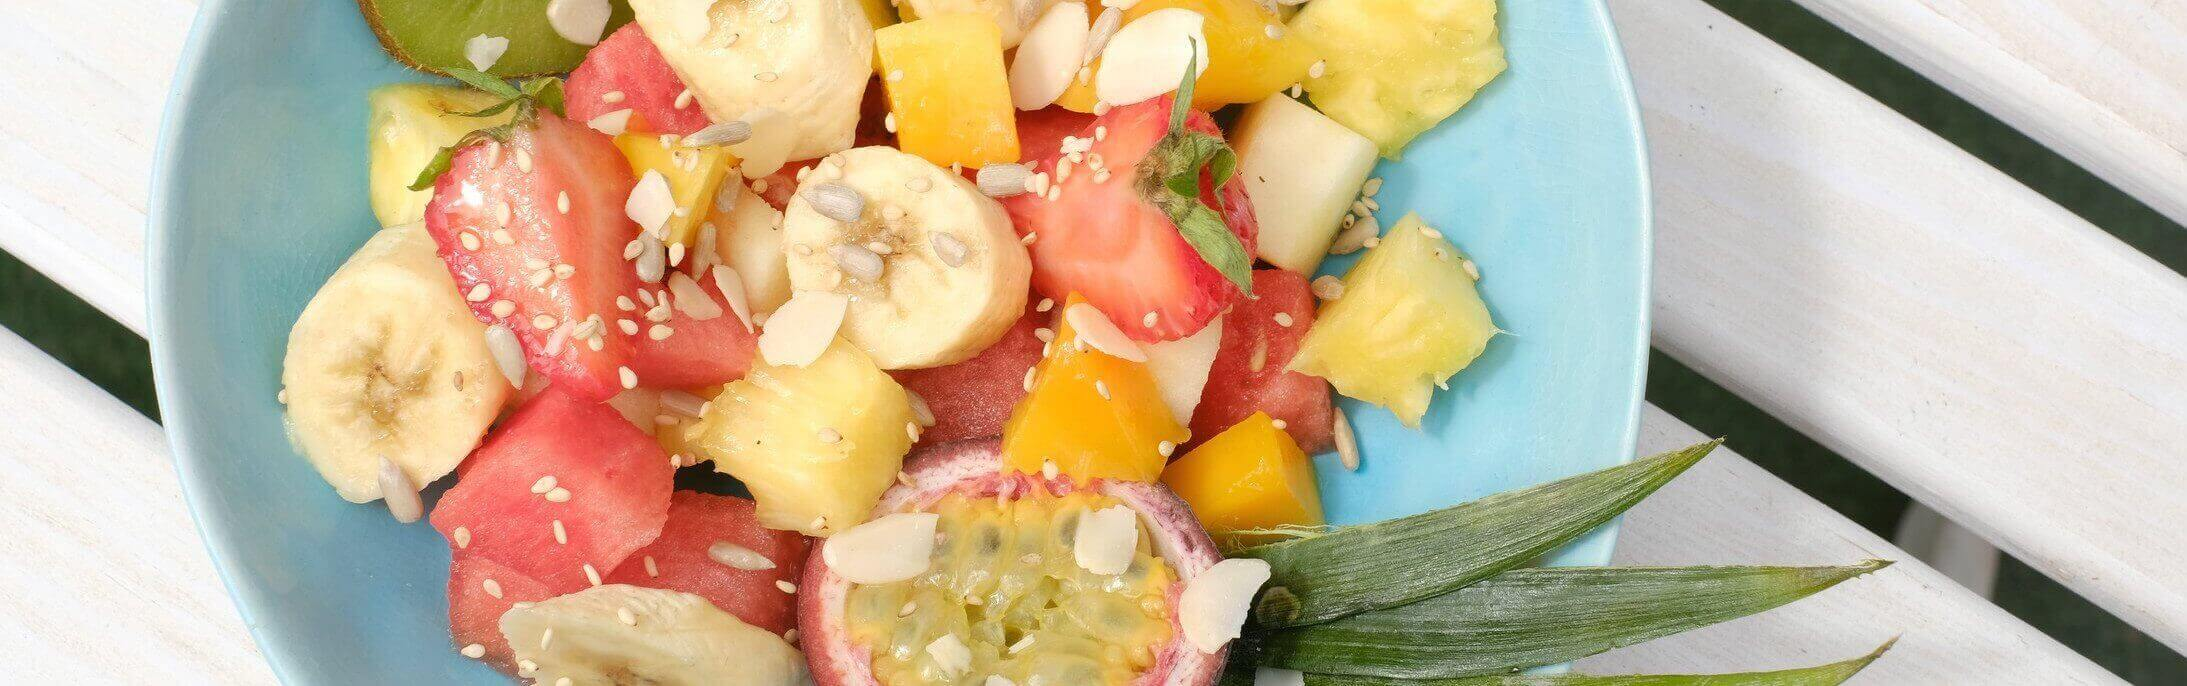 ronis-fruits-salad-healthy-deli-playa-den-bossa-burger